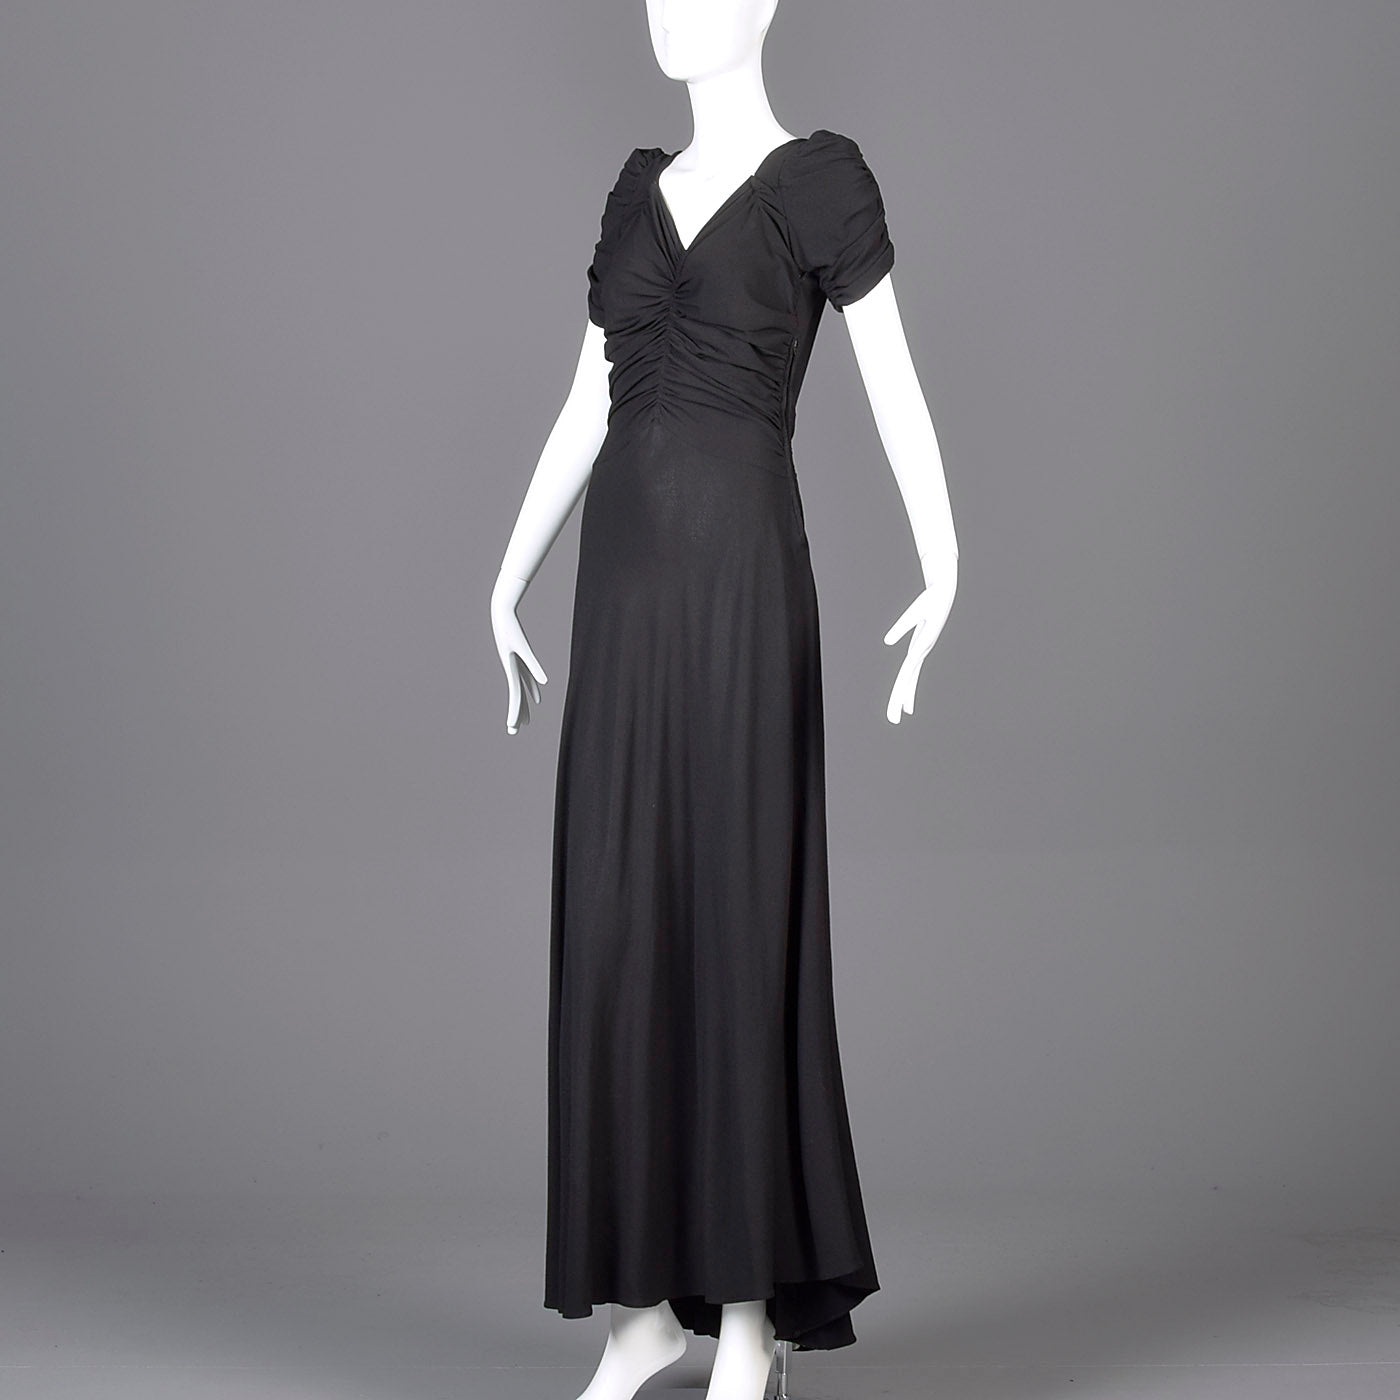 1940s Black Crepe Evening Gown with Short Sleeves & Ruched Bodice